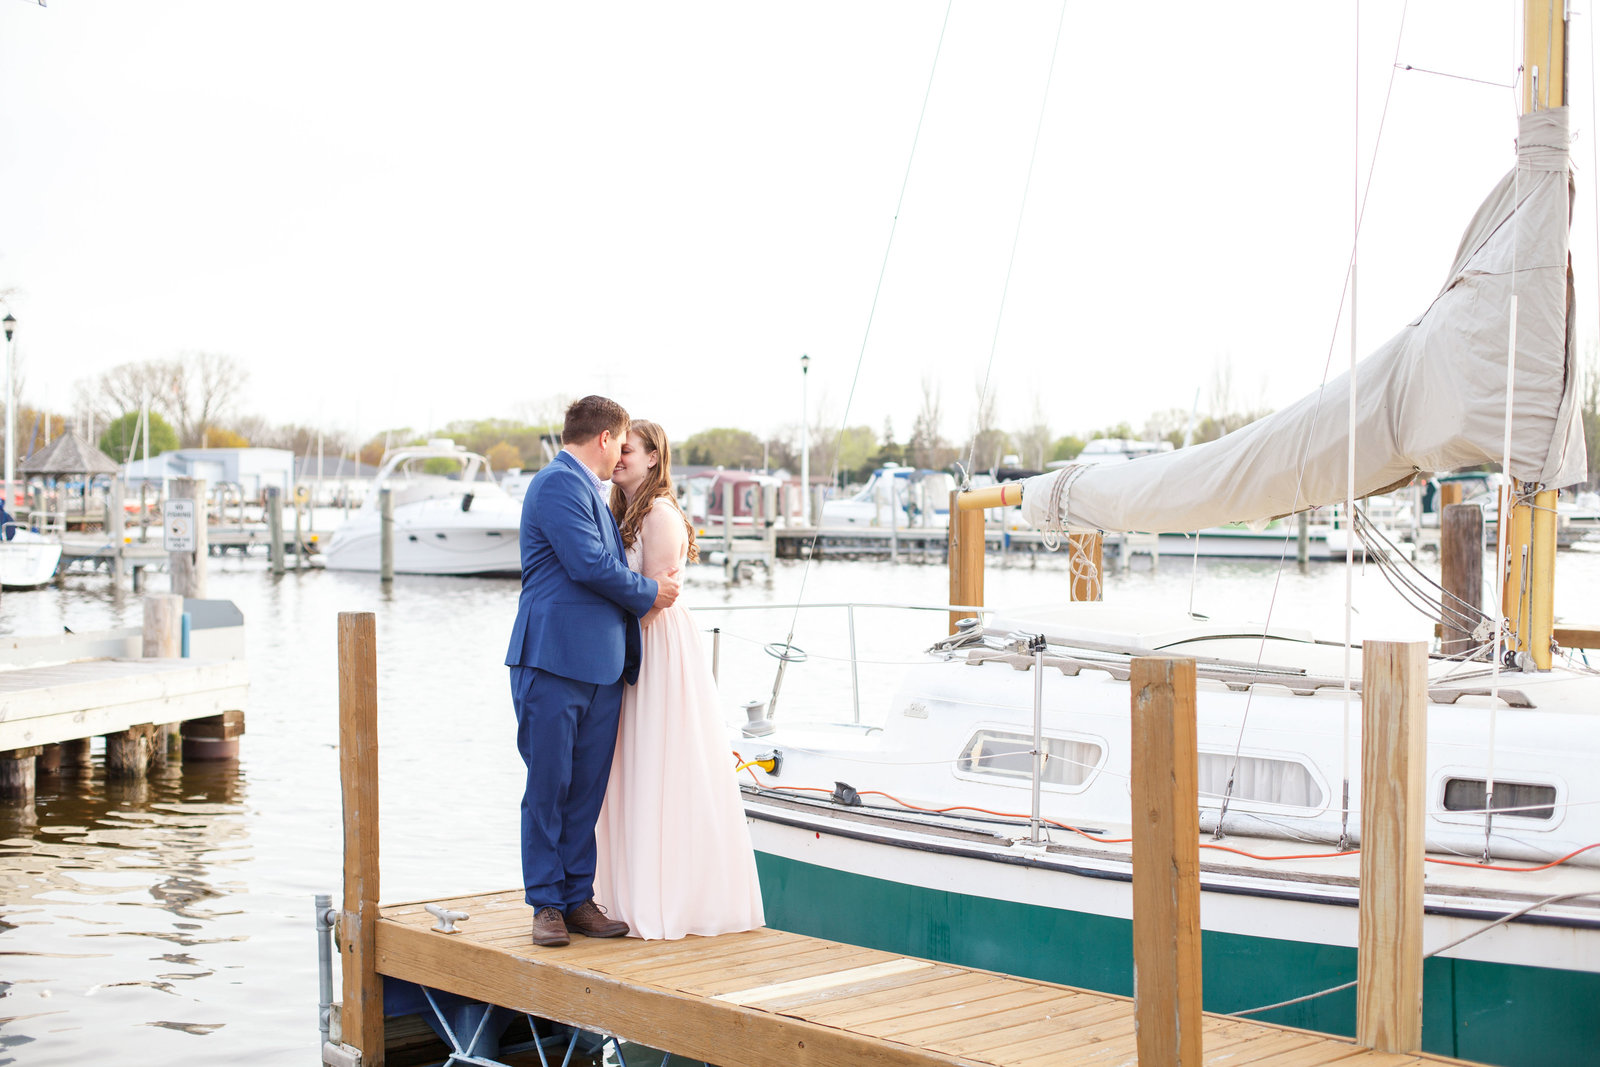 authenticweddingphotography-3